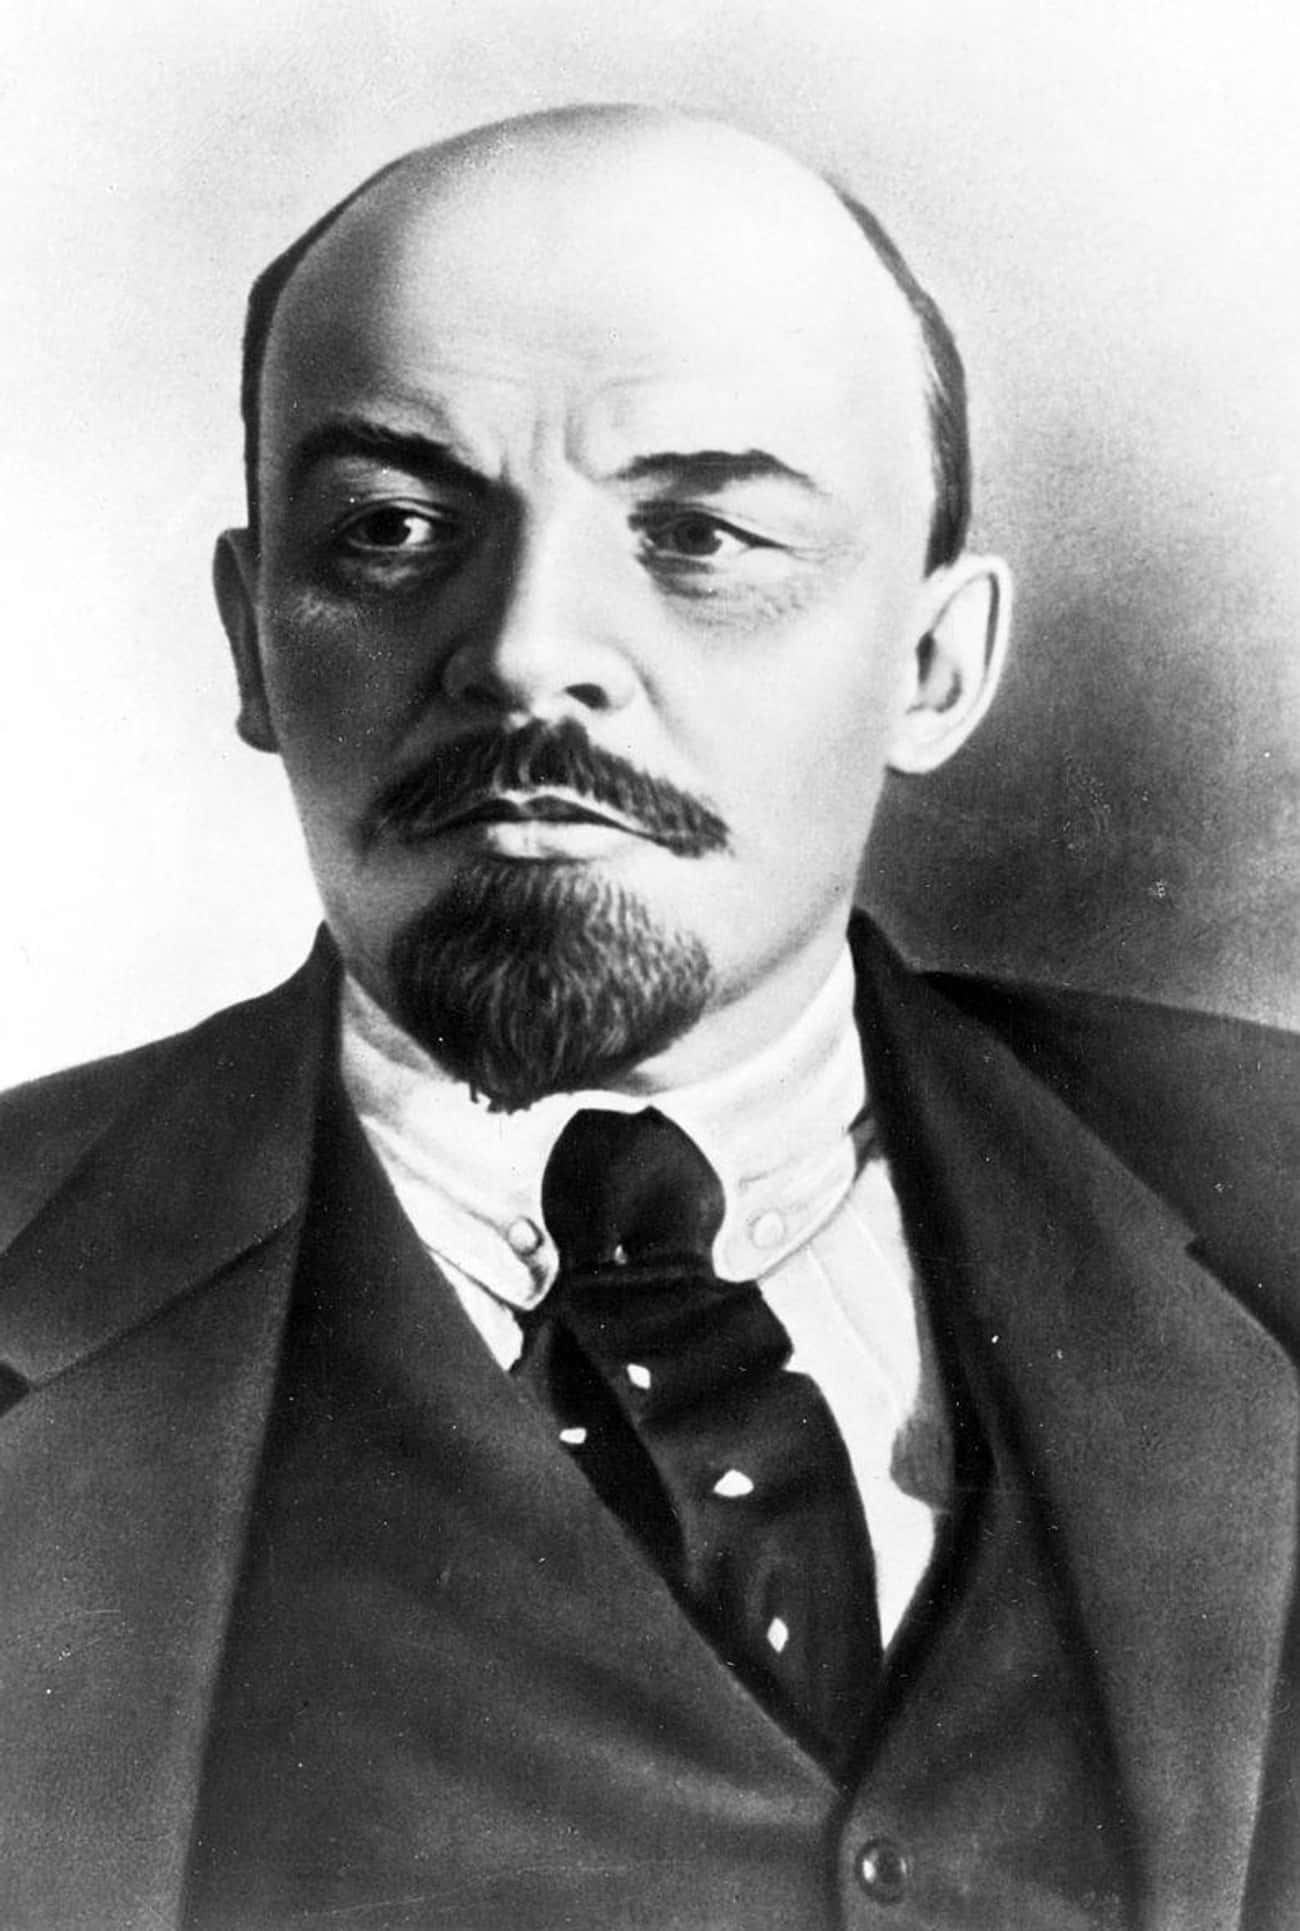 Vladimir Lenin May Have Died of Syphilis